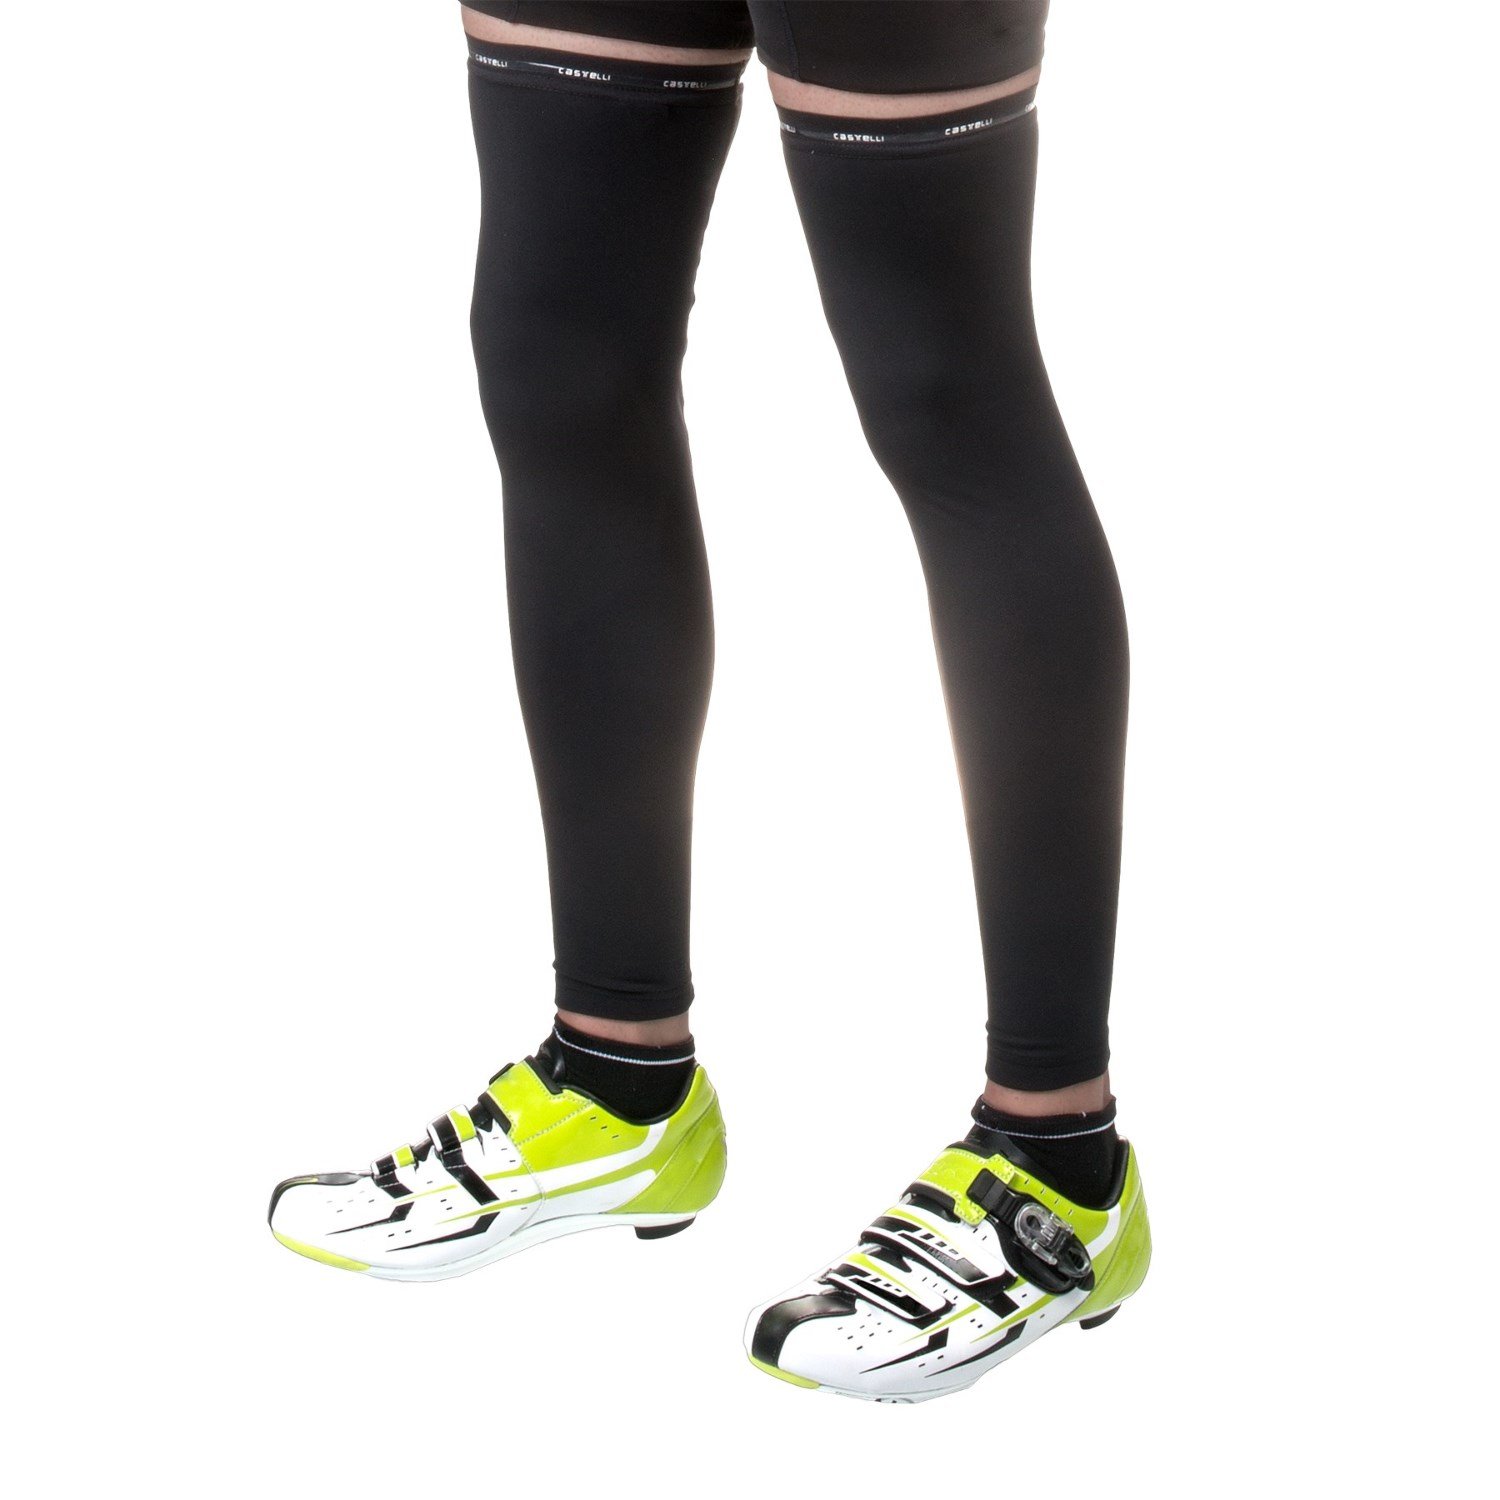 Castelli Thermoflex Classic Cycling Leg Warmers (For Men) - Save 69%